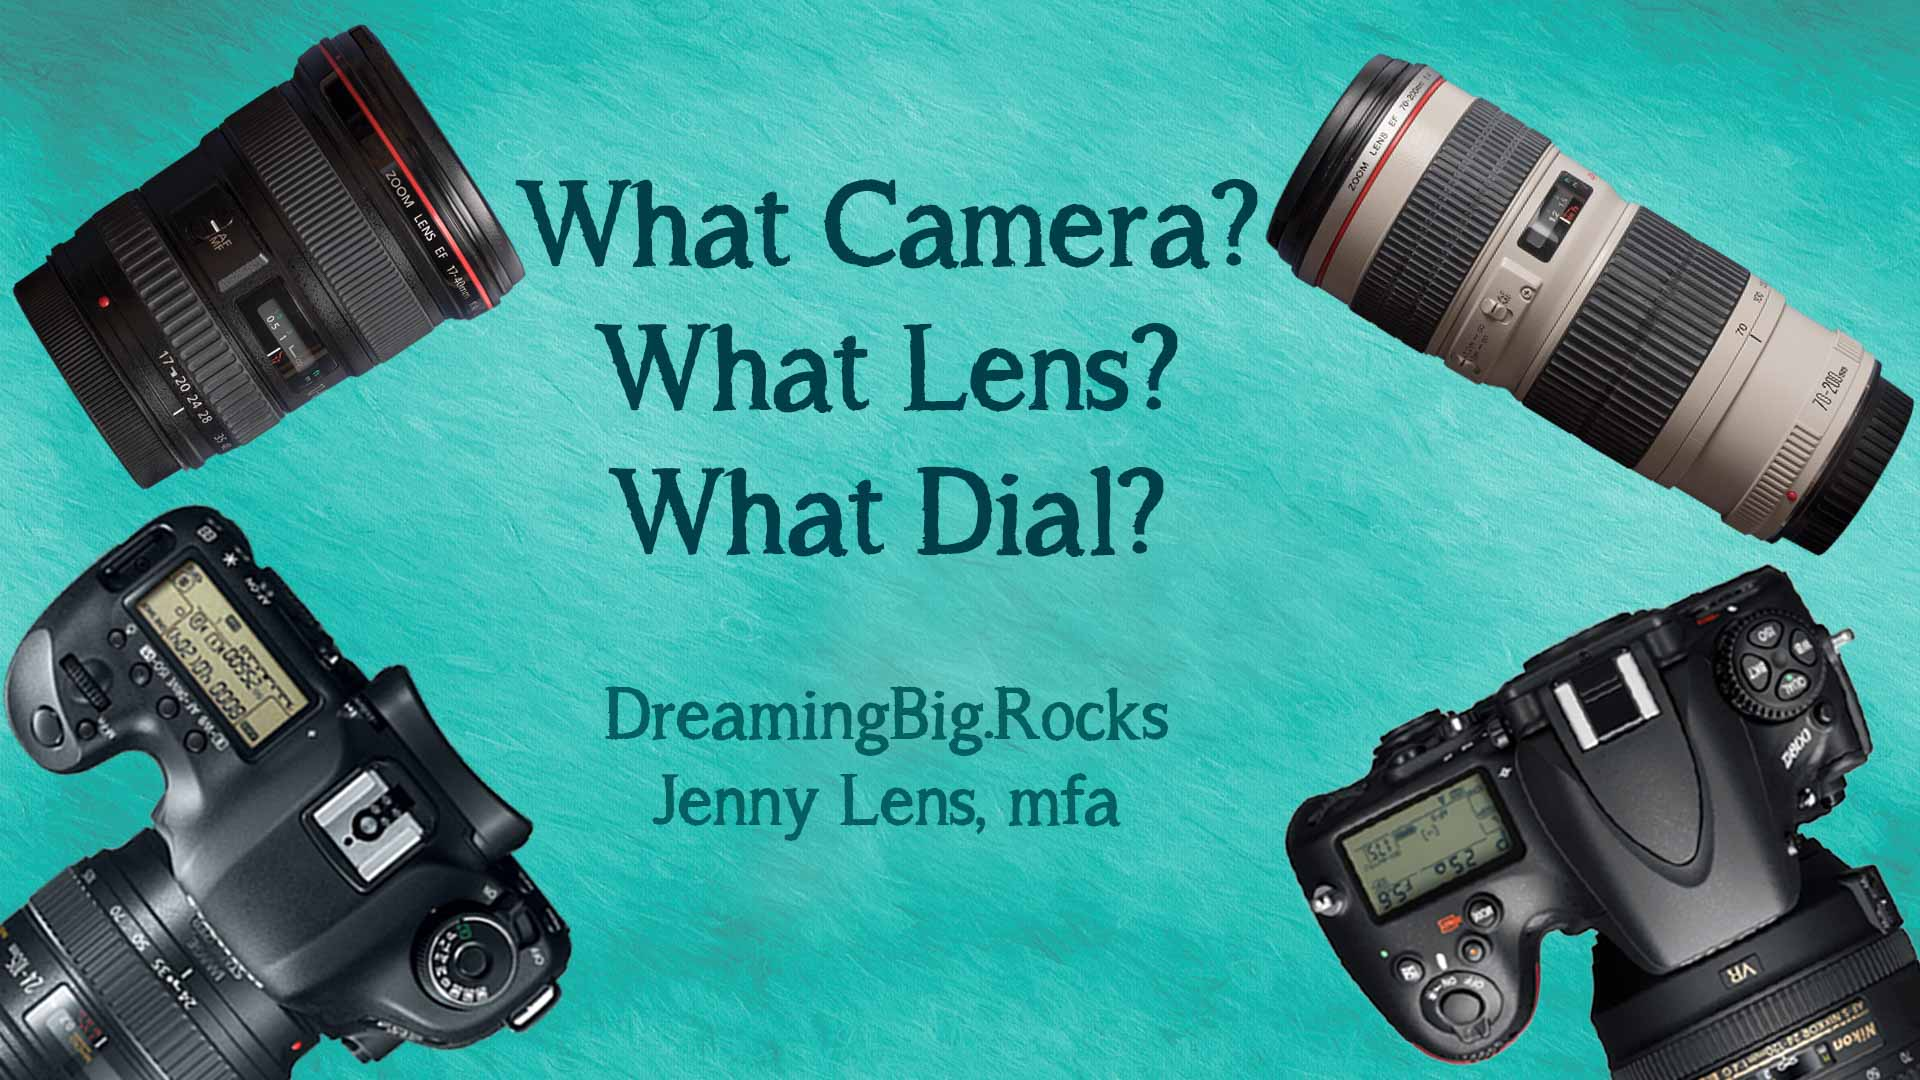 What Camera? What Lens? What Dial?